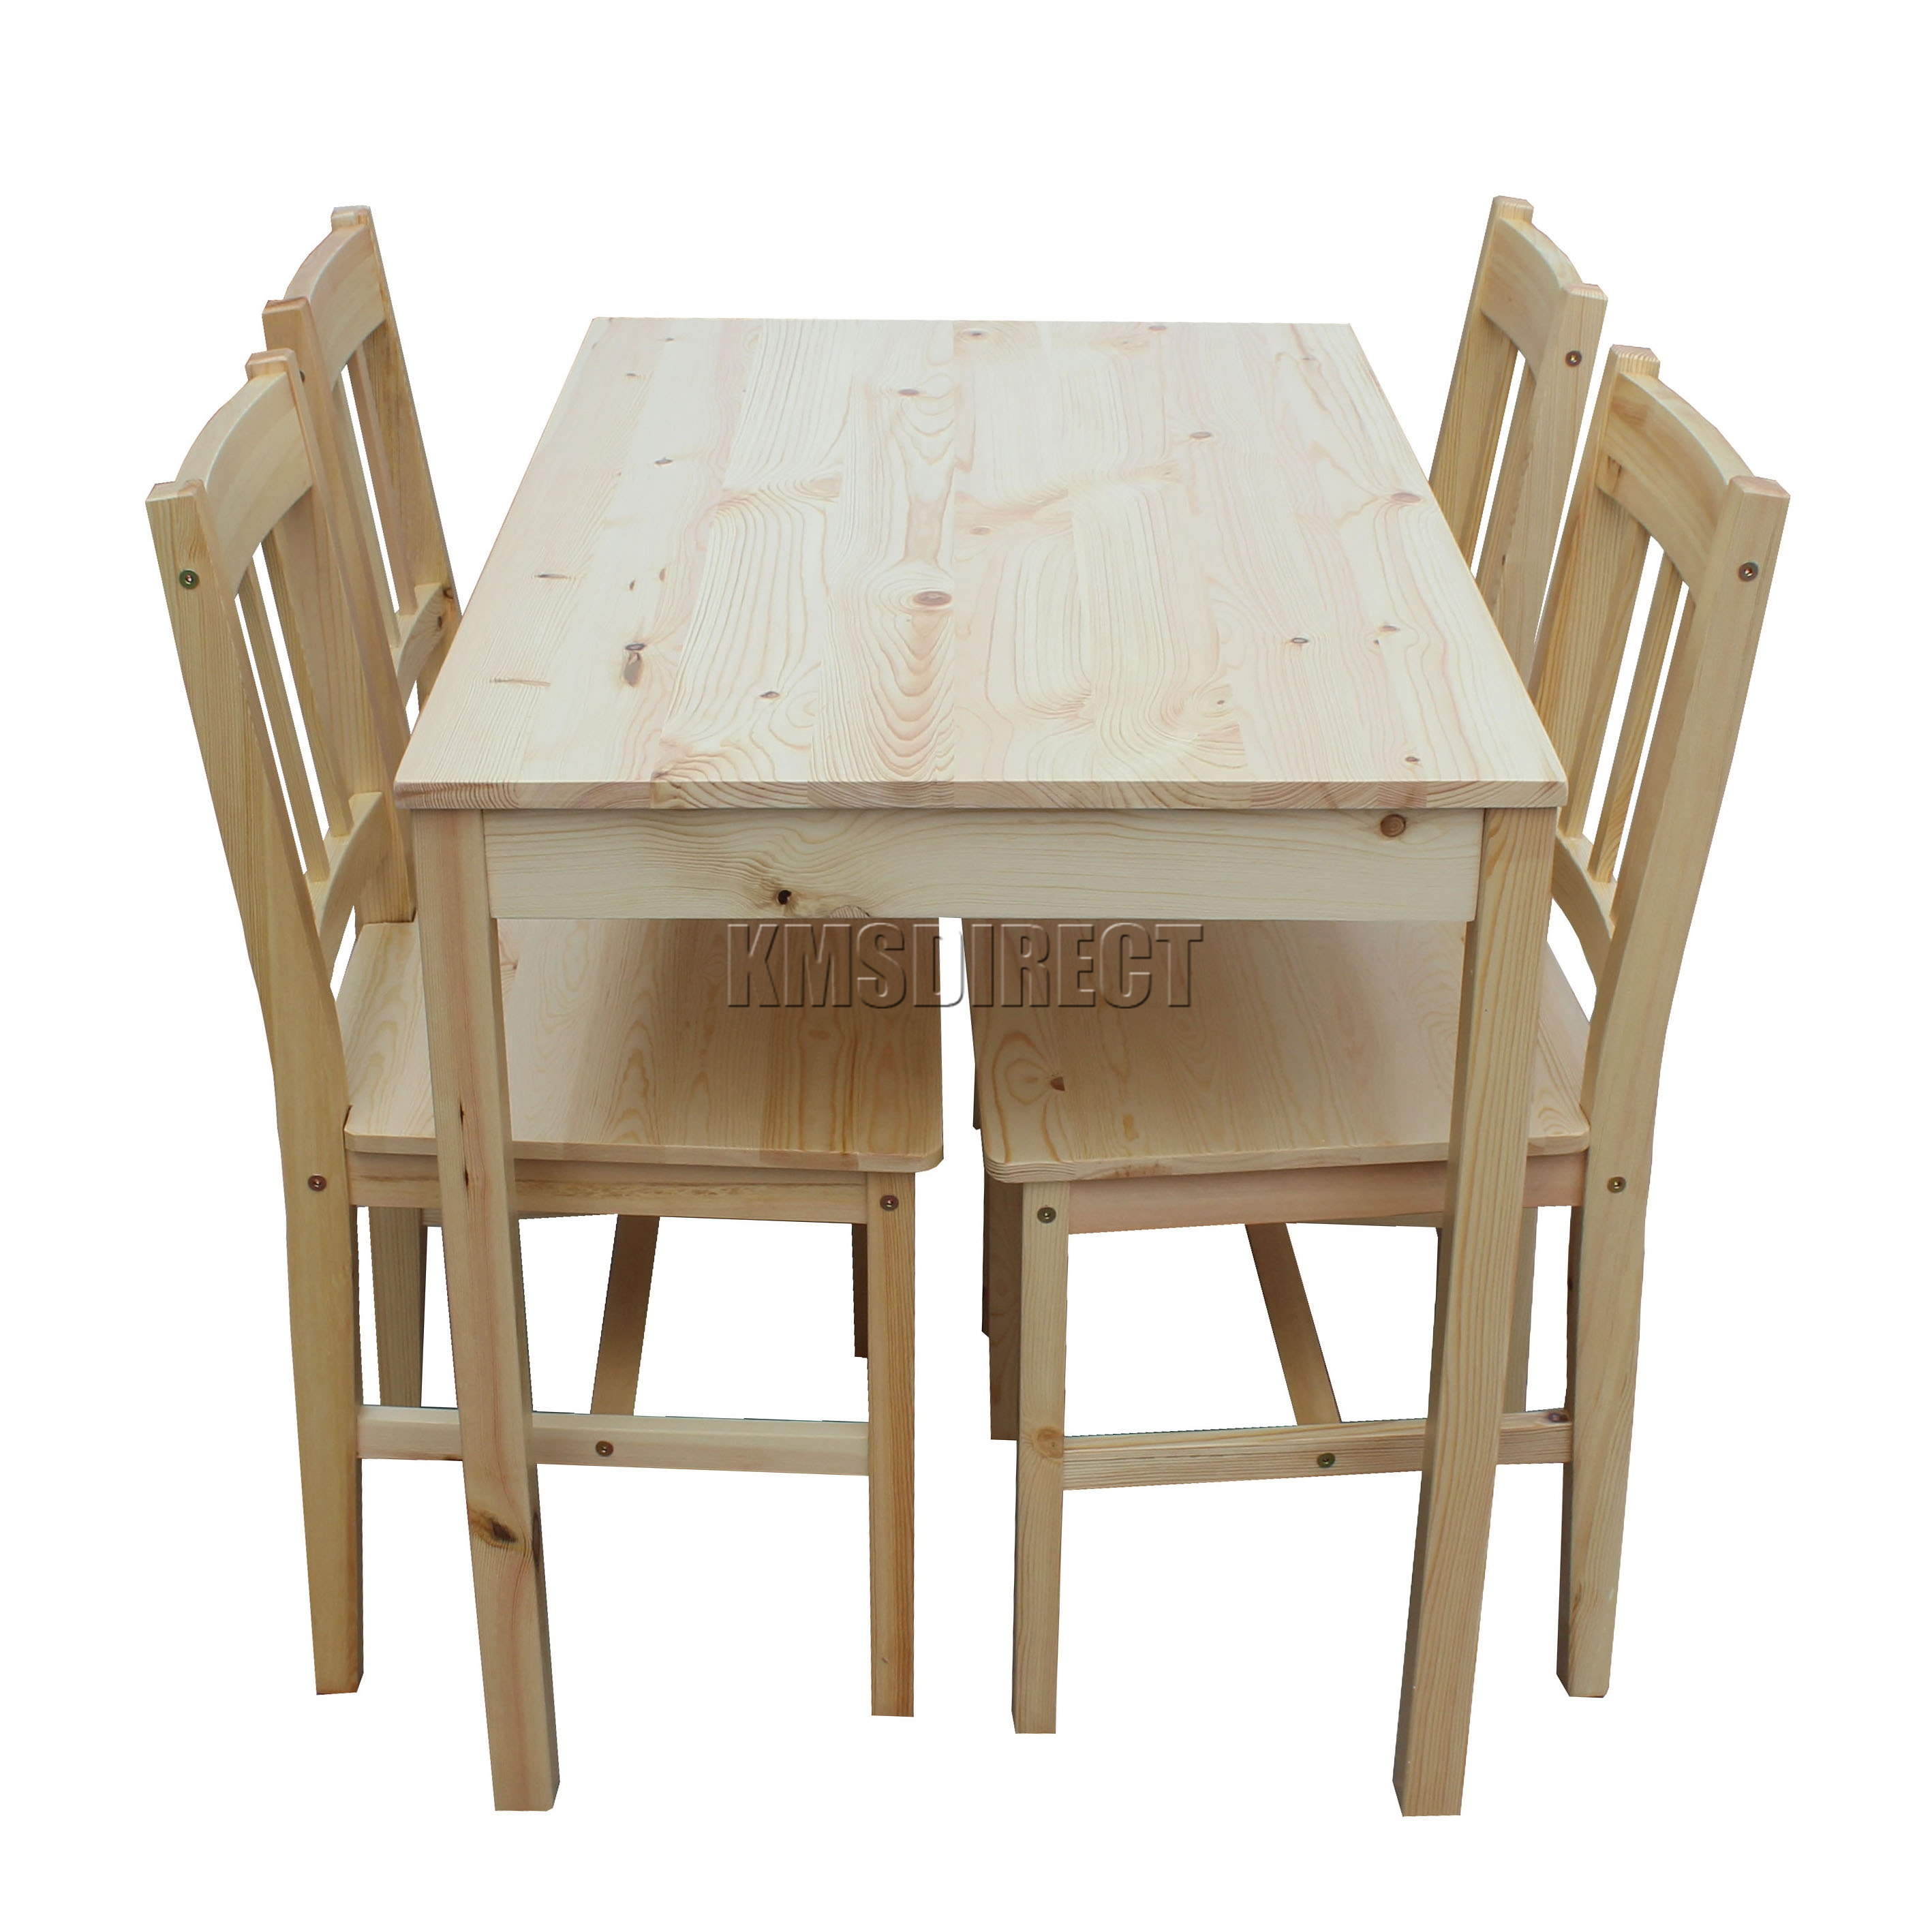 Westwood Solid Wooden Dining Table With 4 Chairs Set Kitchen Furniture Pine New Ebay